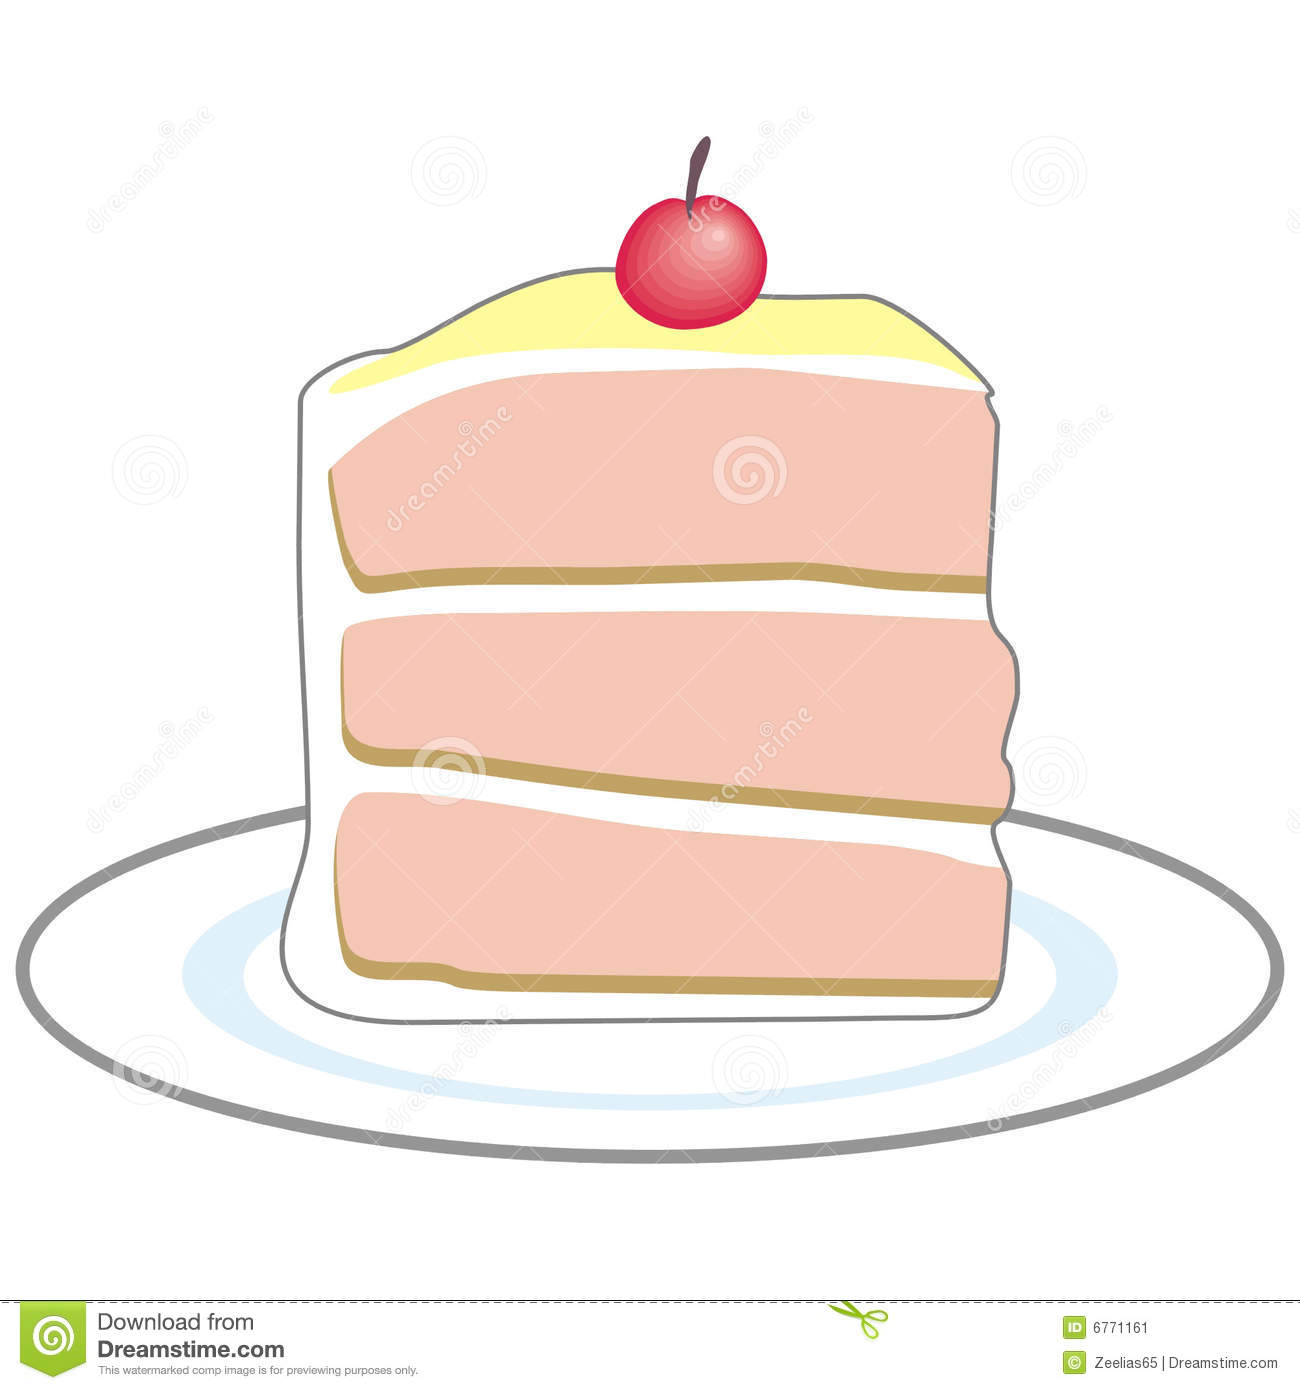 Piece Of Cake Clipart Piece Of Cake Clip Art Piece #gx3NLO.